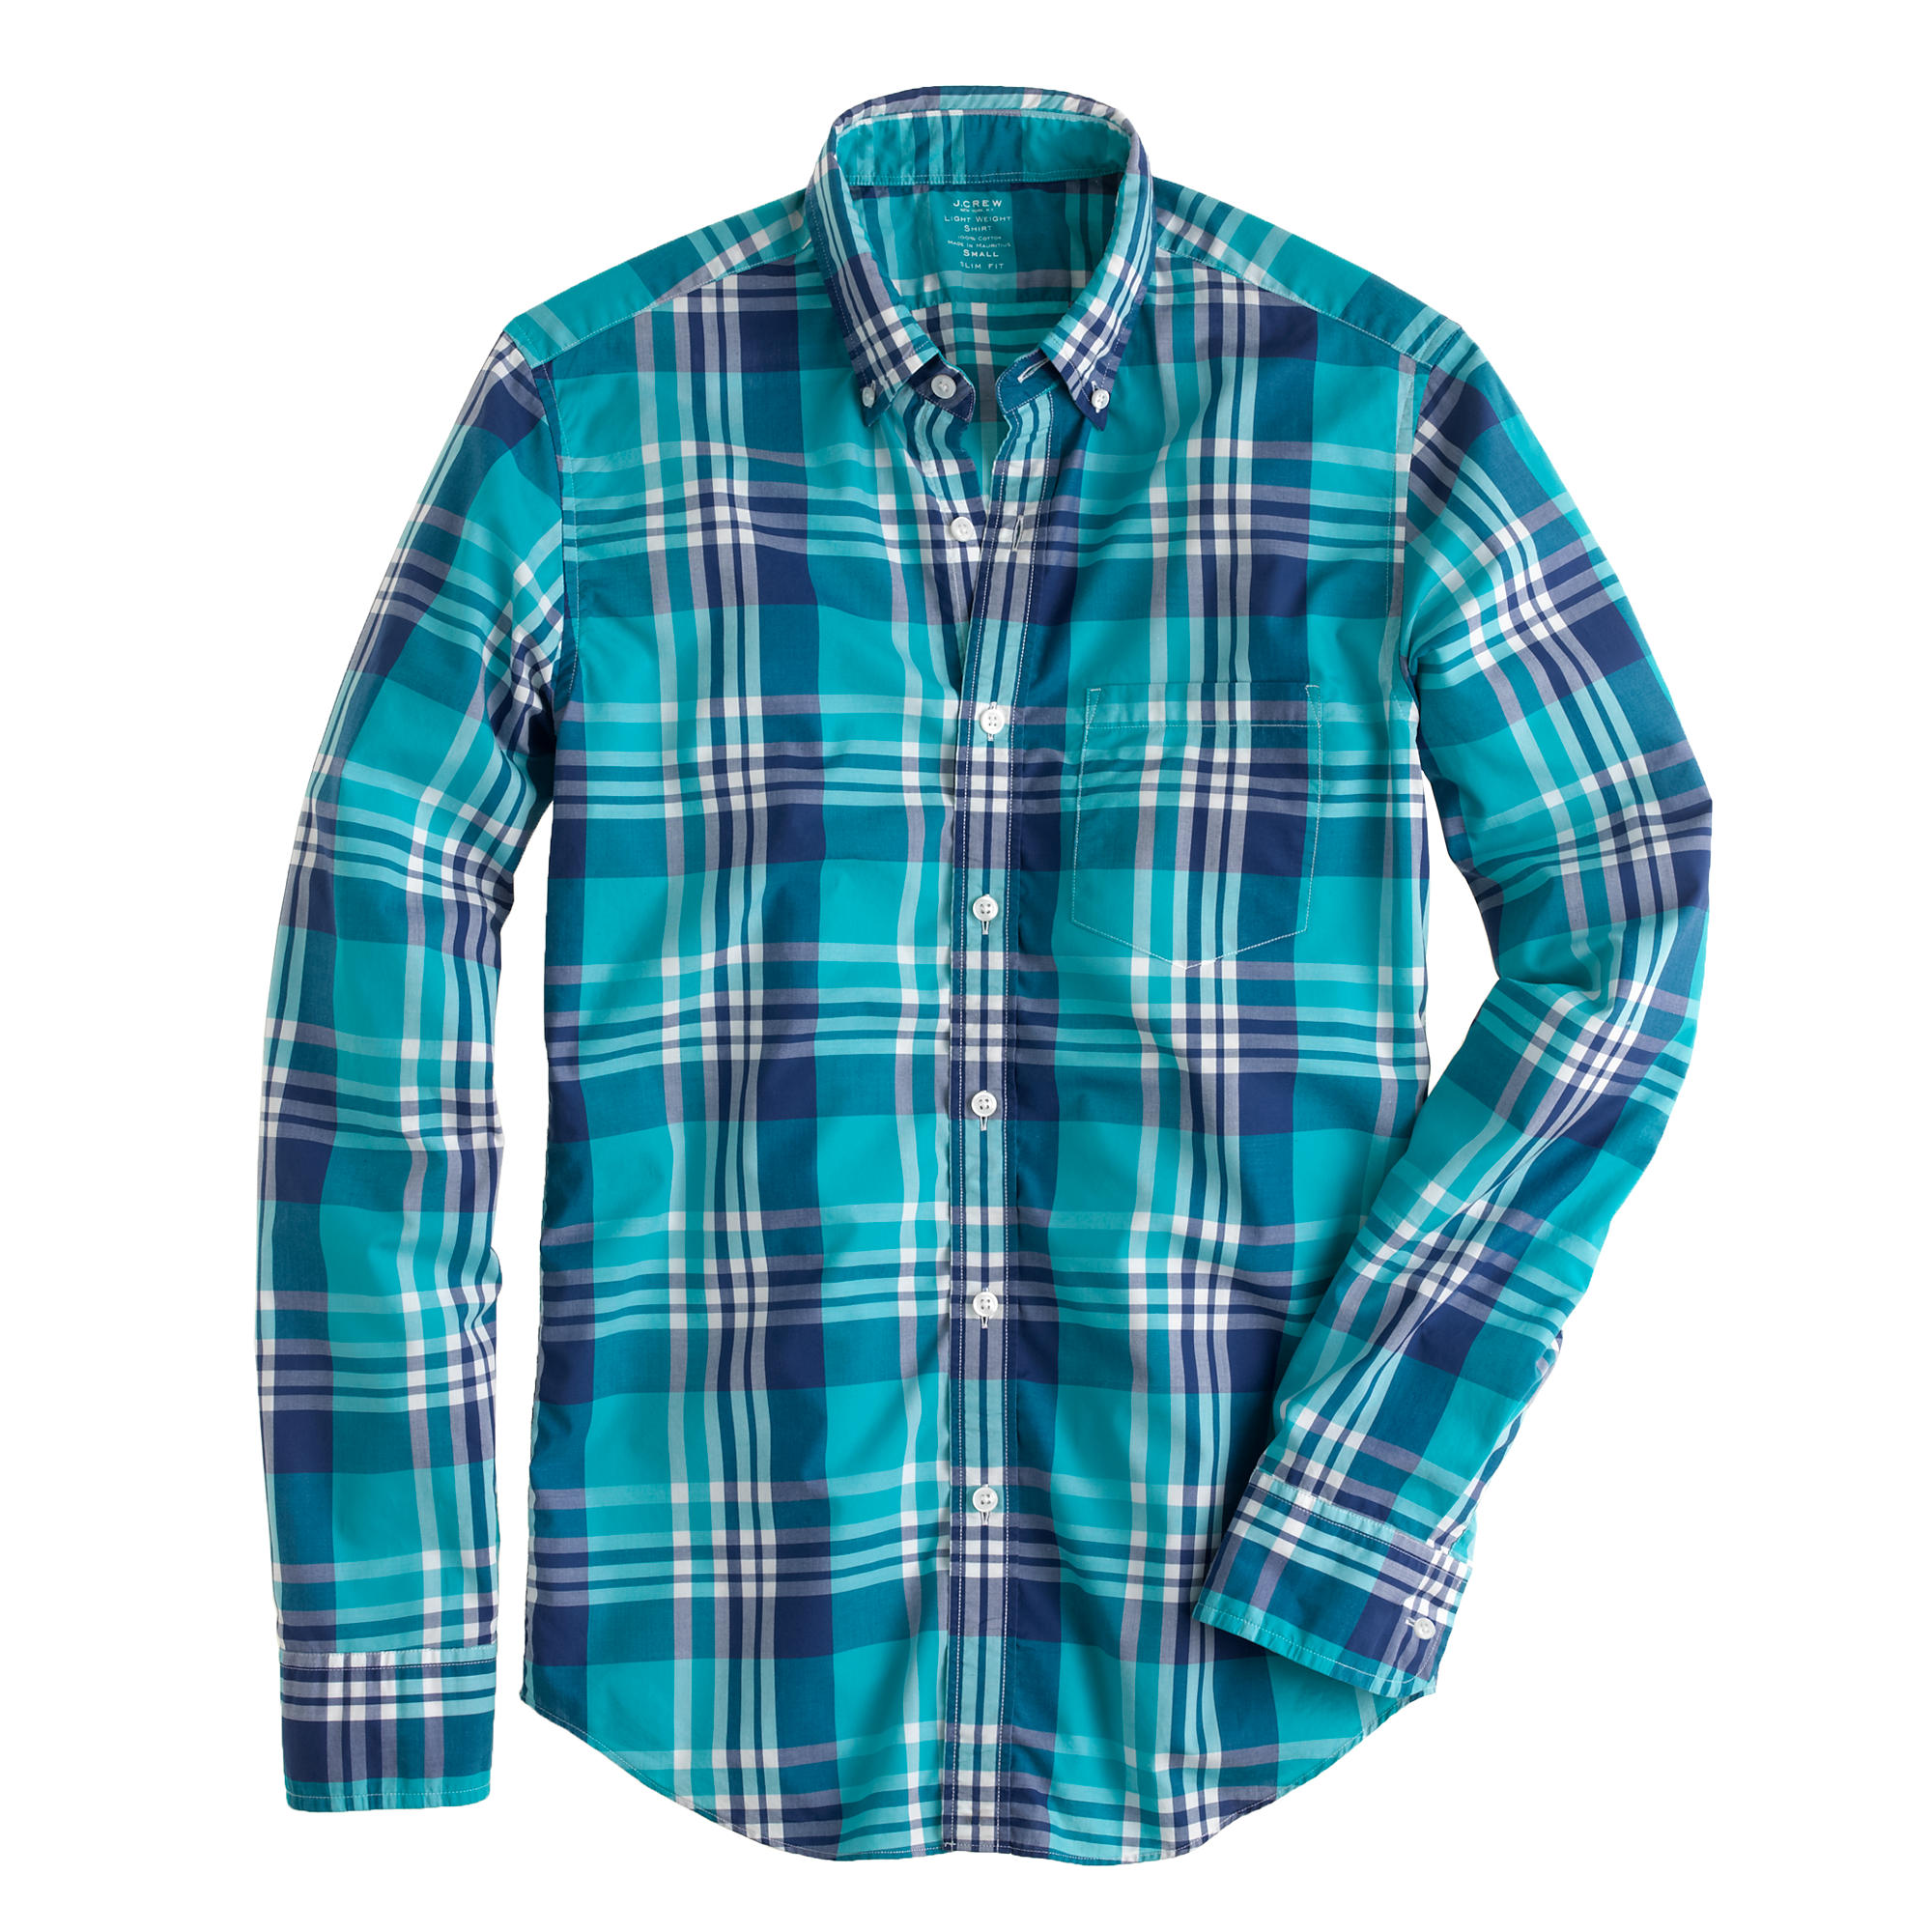 Lightweight shirt in havana blue plaid j crew for Buy plaid shirts online